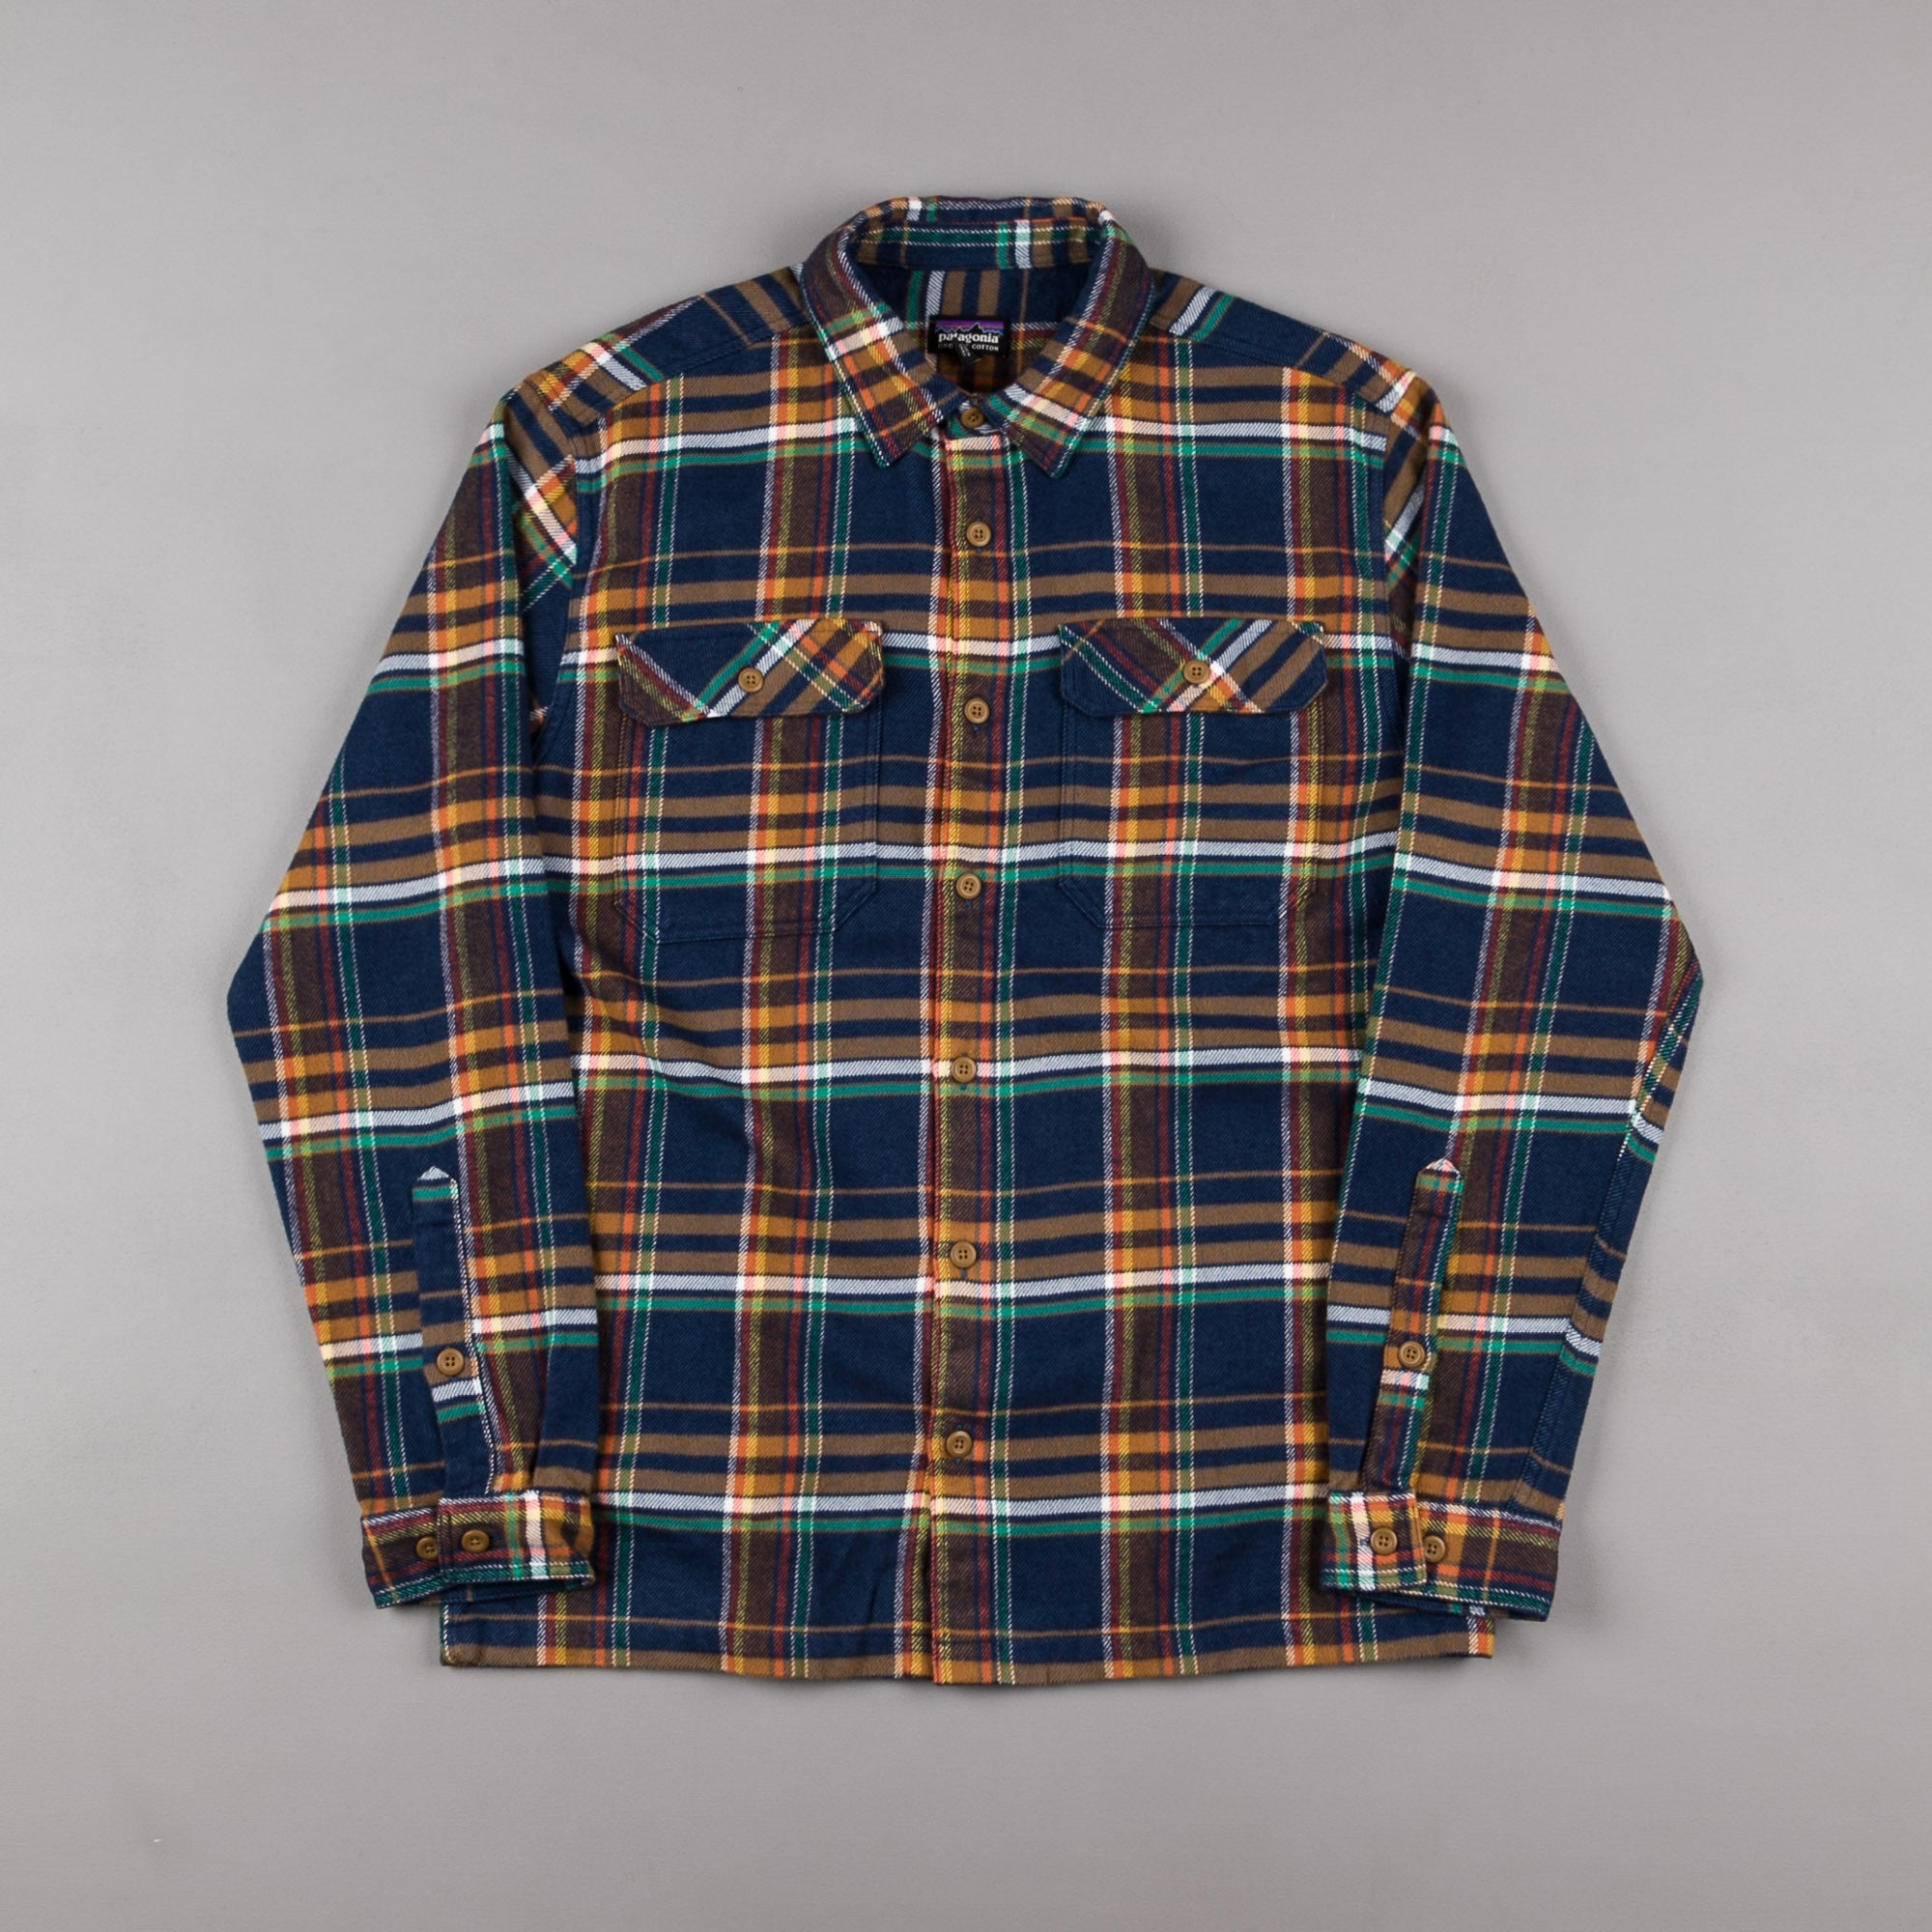 Patagonia Fjord Flannel Shirt - Blue Ox: Navy Blue